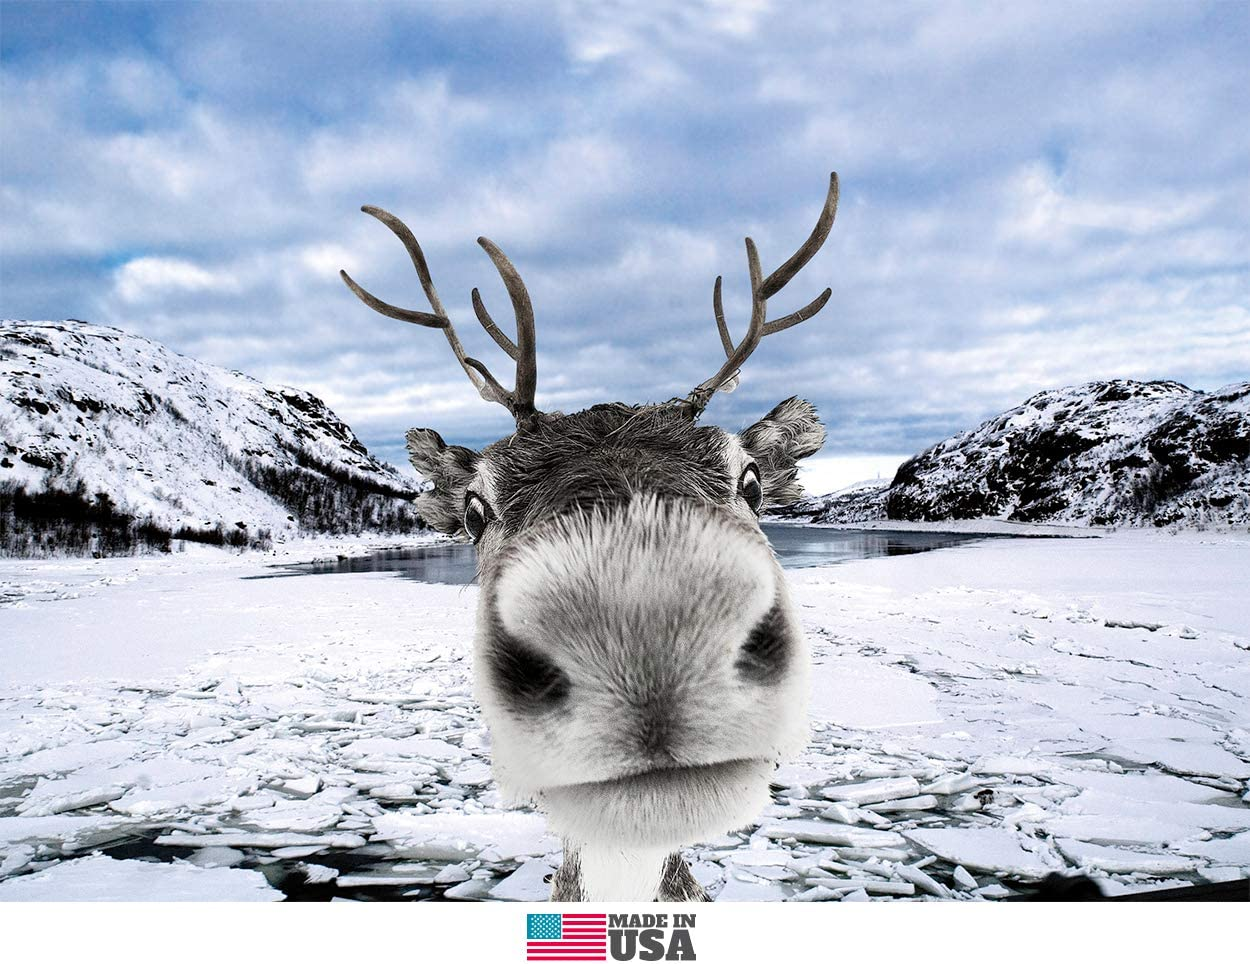 Reindeer Funny Christmas Cards Boxed Set of 12 Holiday Cards and 12 Envelopes. Made in USA.